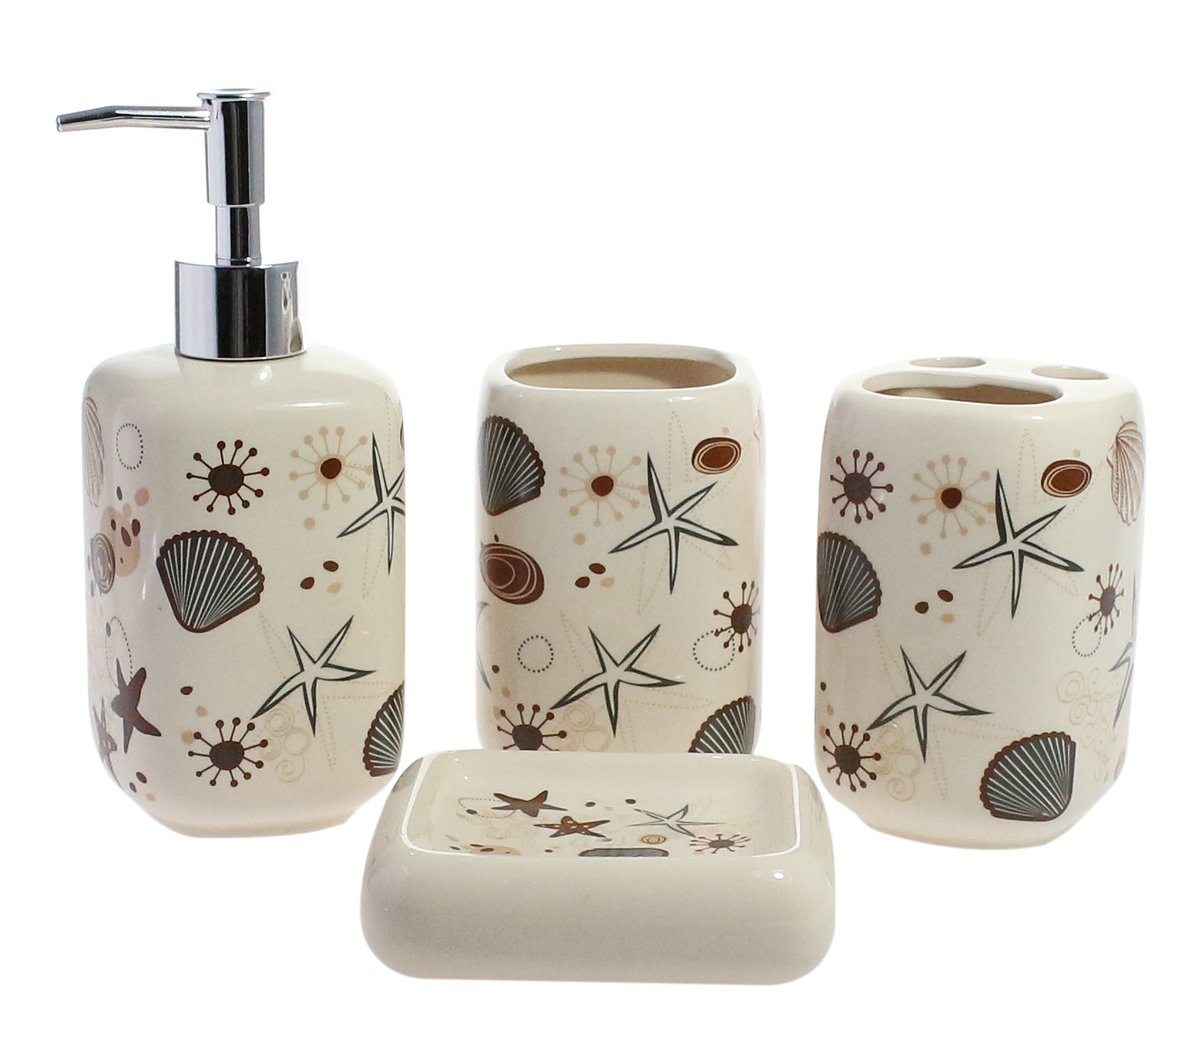 Decorative 4-Piece Ceramic Bathroom Set